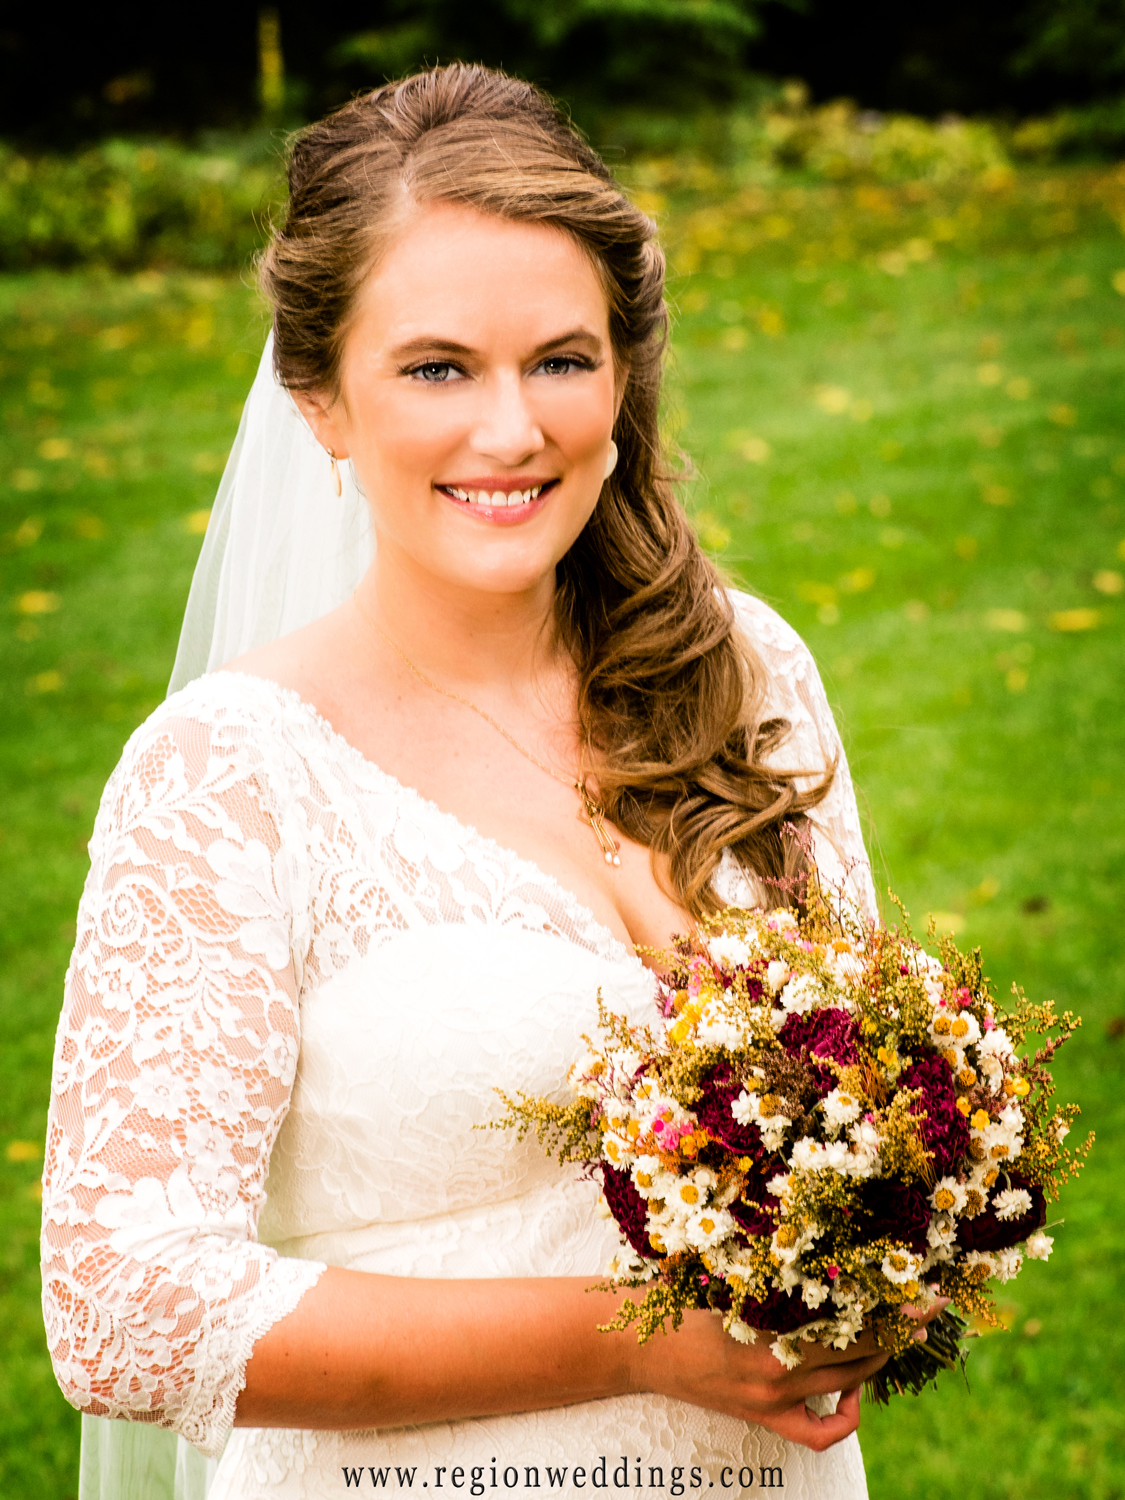 Beautiful bridal portrait taken in the Fall season with warm color.